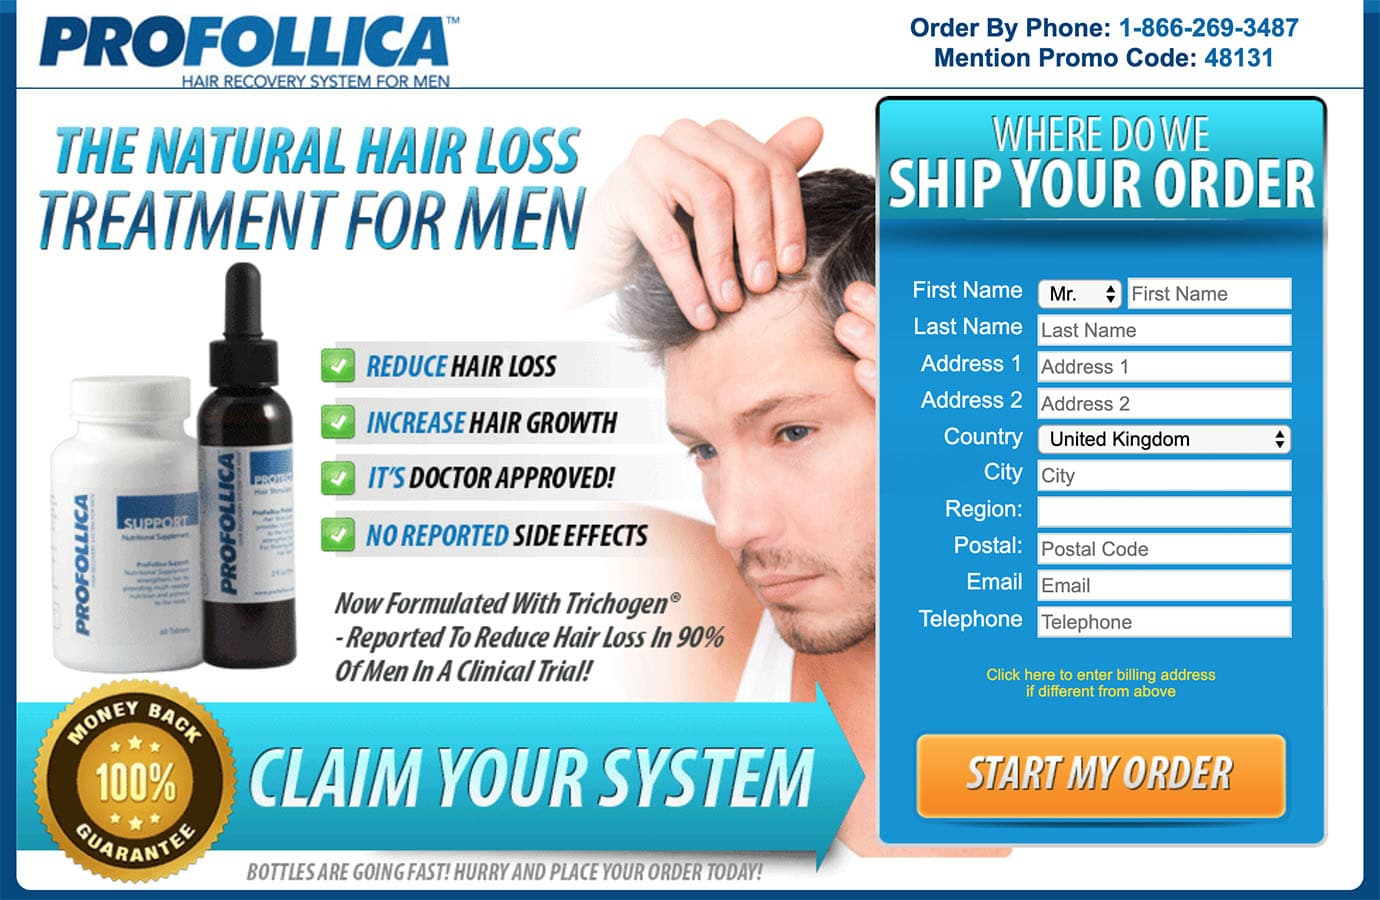 profollica uk website